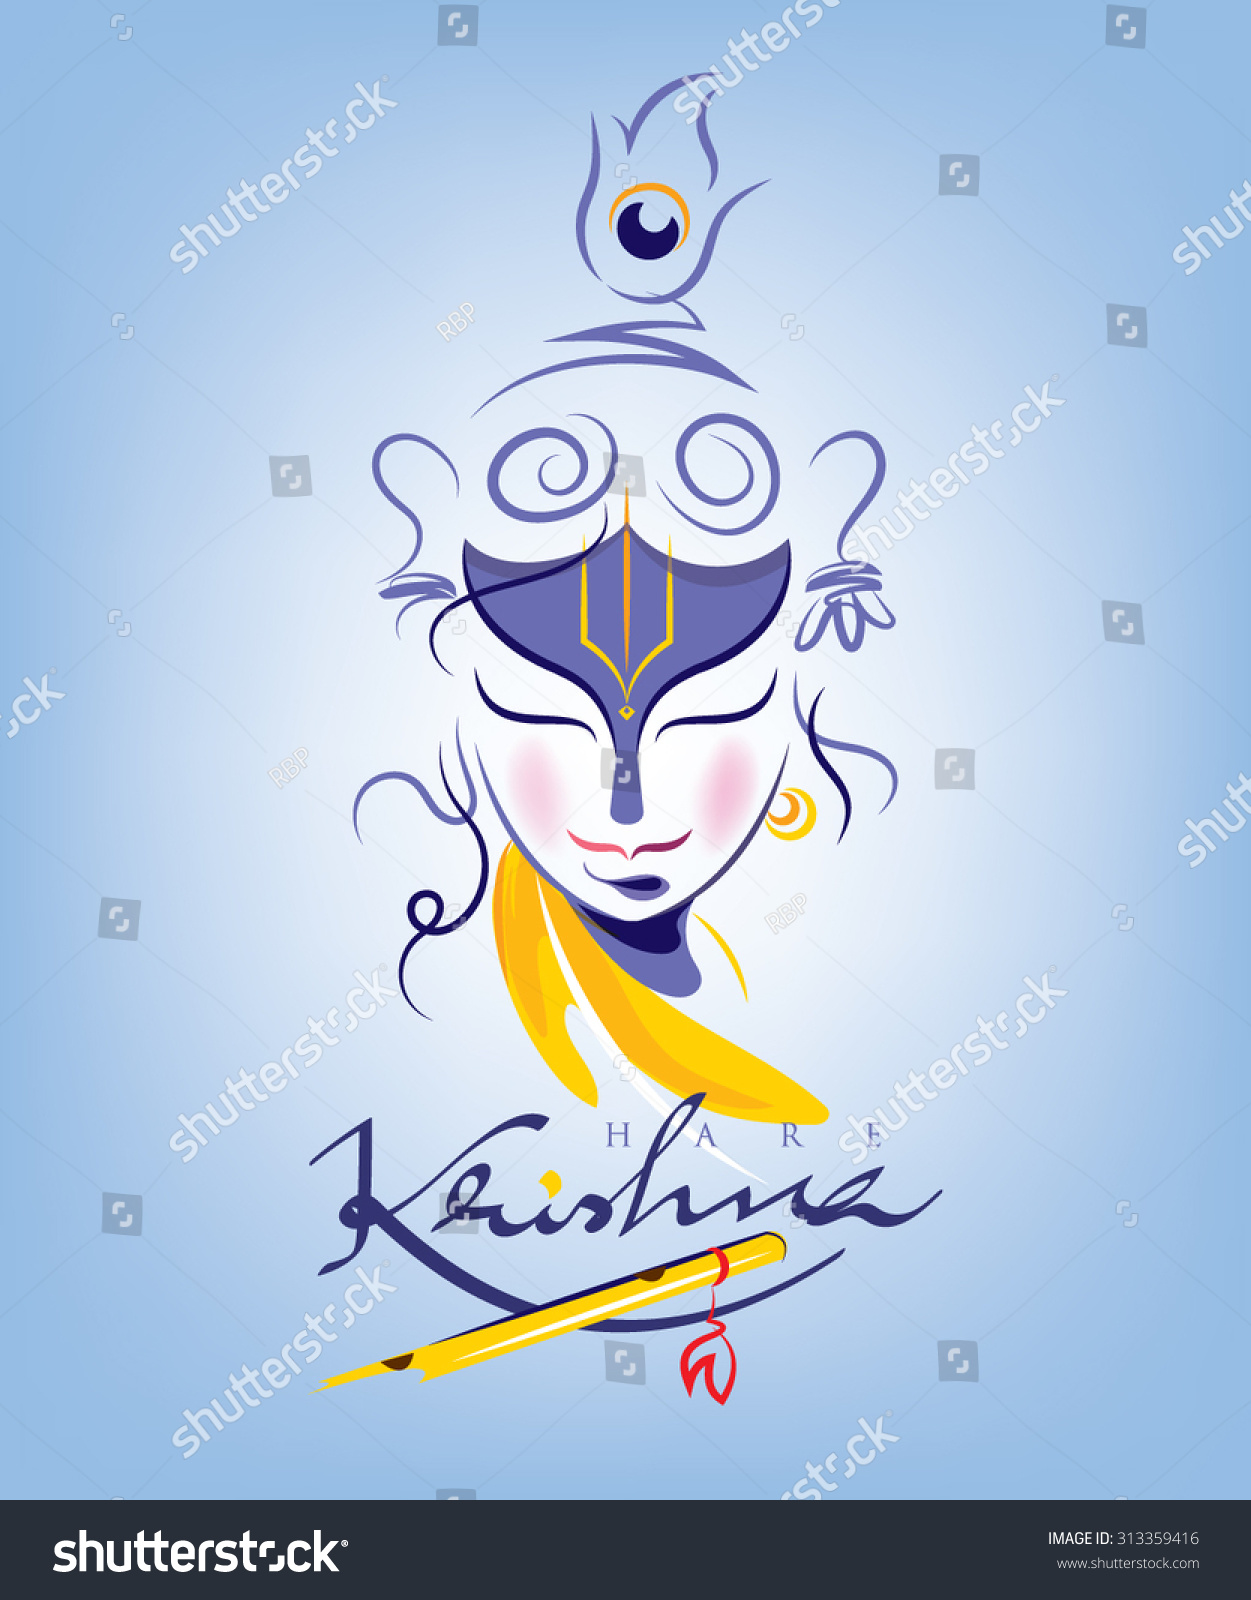 Lord Bal Krishna wall stickers Pictures for free download